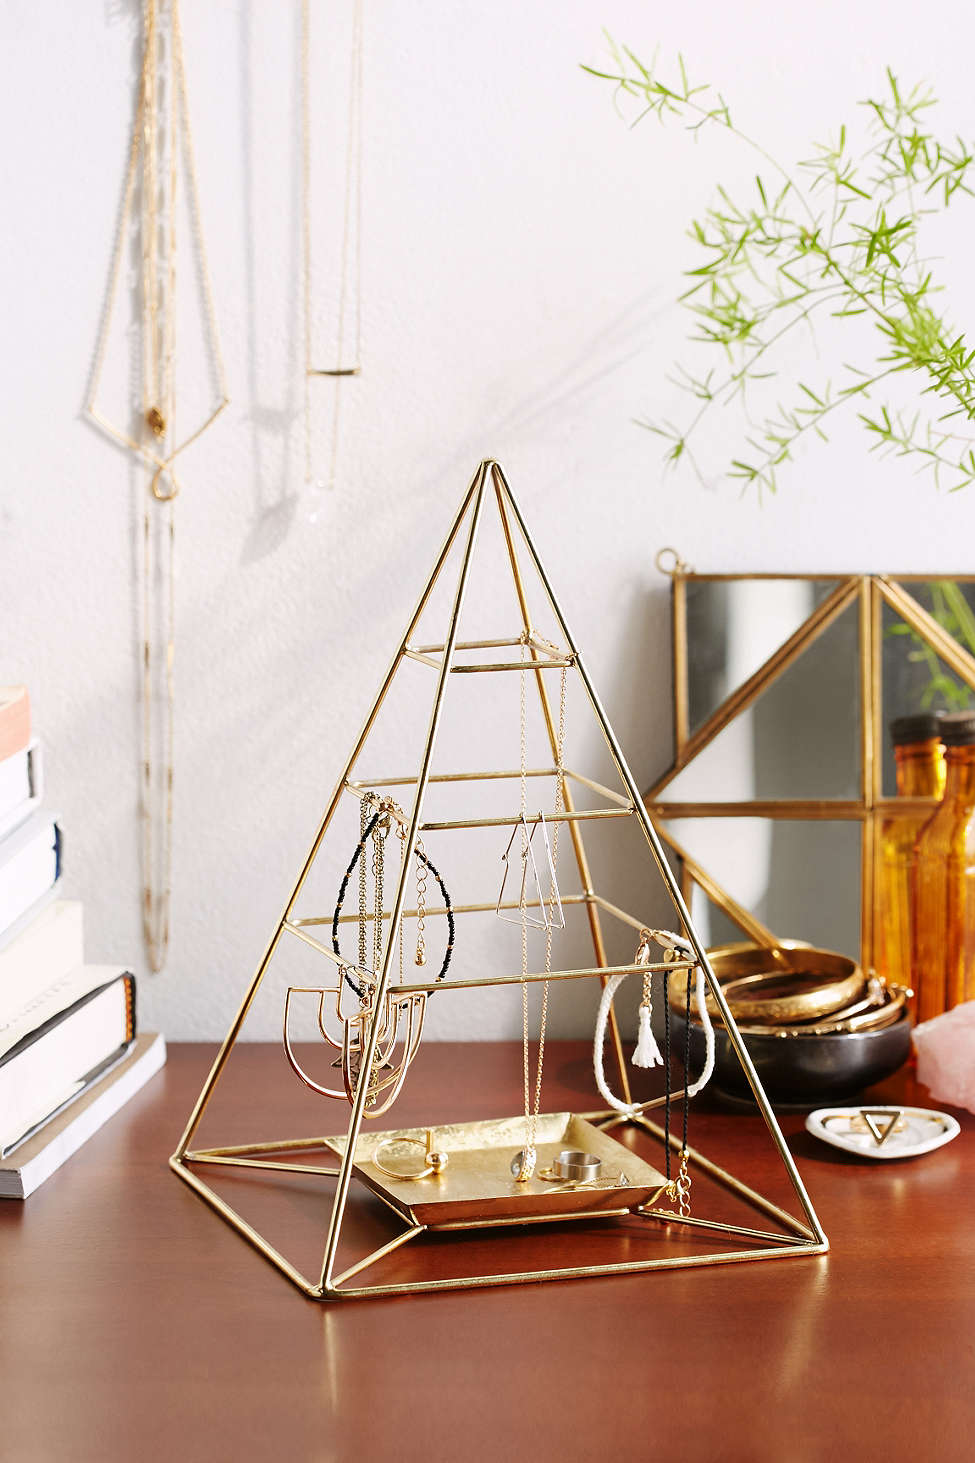 Pyramid jewelry stand from Urban Outfitters